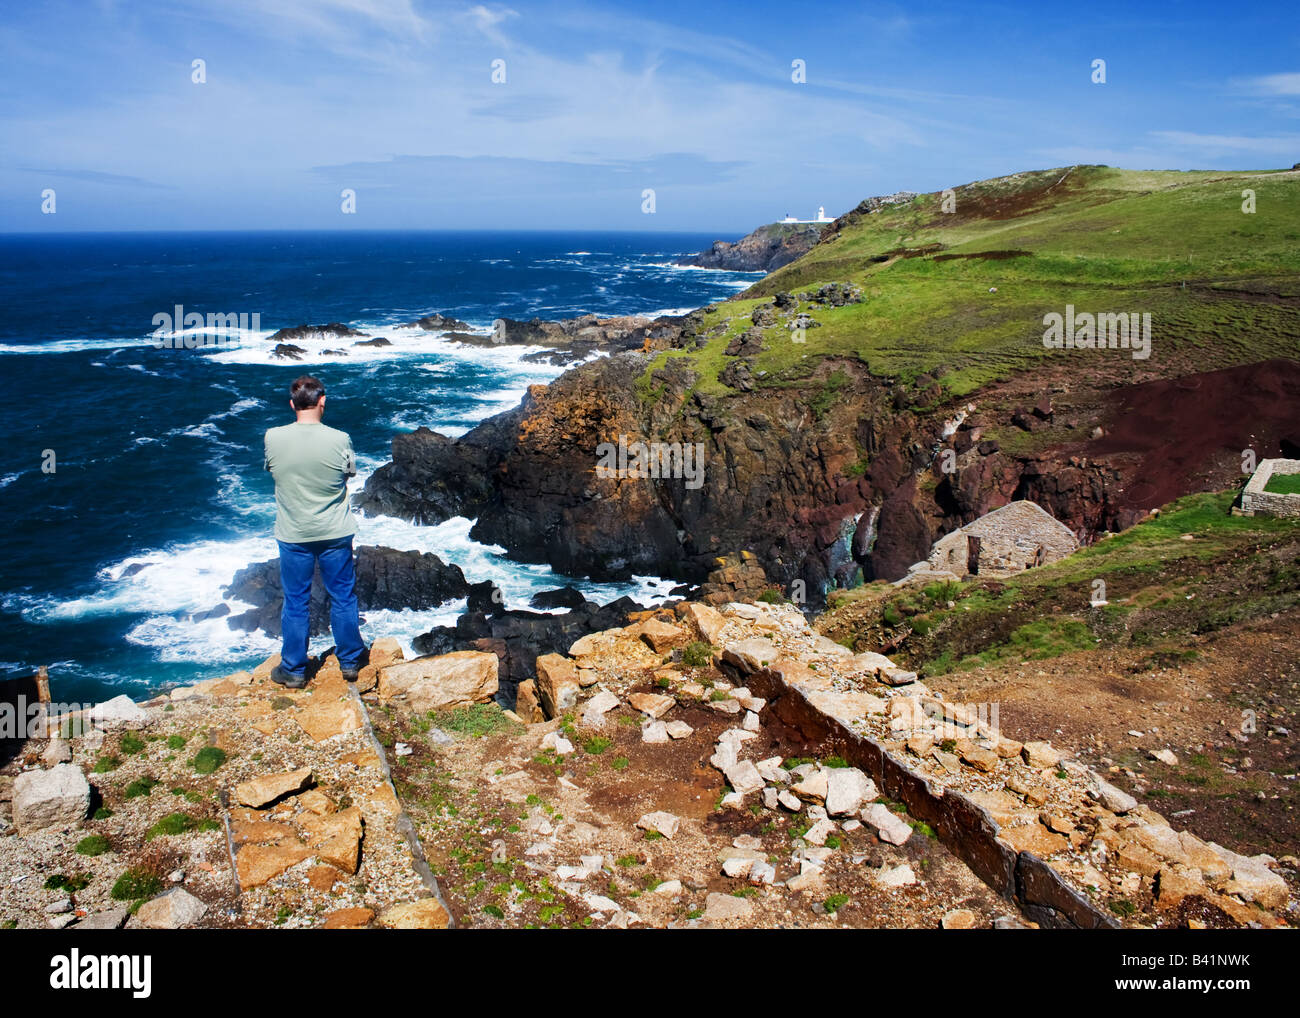 Man looking out to sea at Levant tin mine on the Cornish coast. - Stock Image